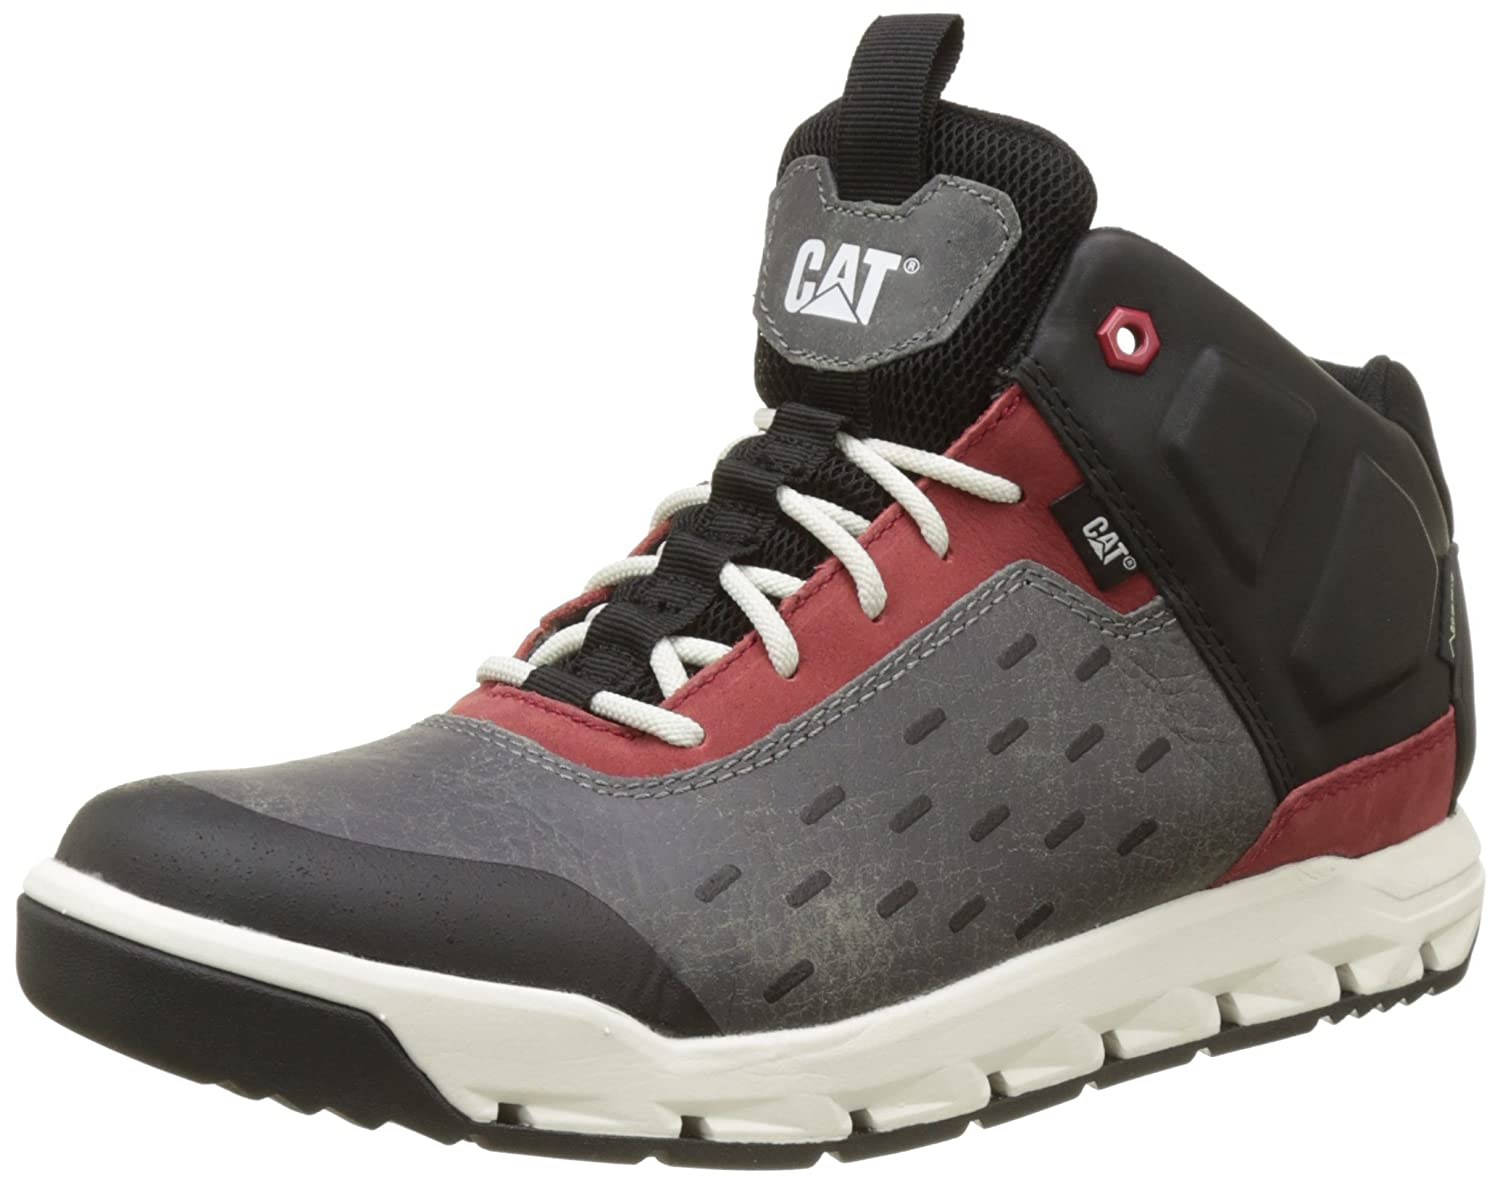 Caterpillar Filter Gore-Tex, Zapatillas para Hombre, Rojo (Mens Brick/Black), 44 EU